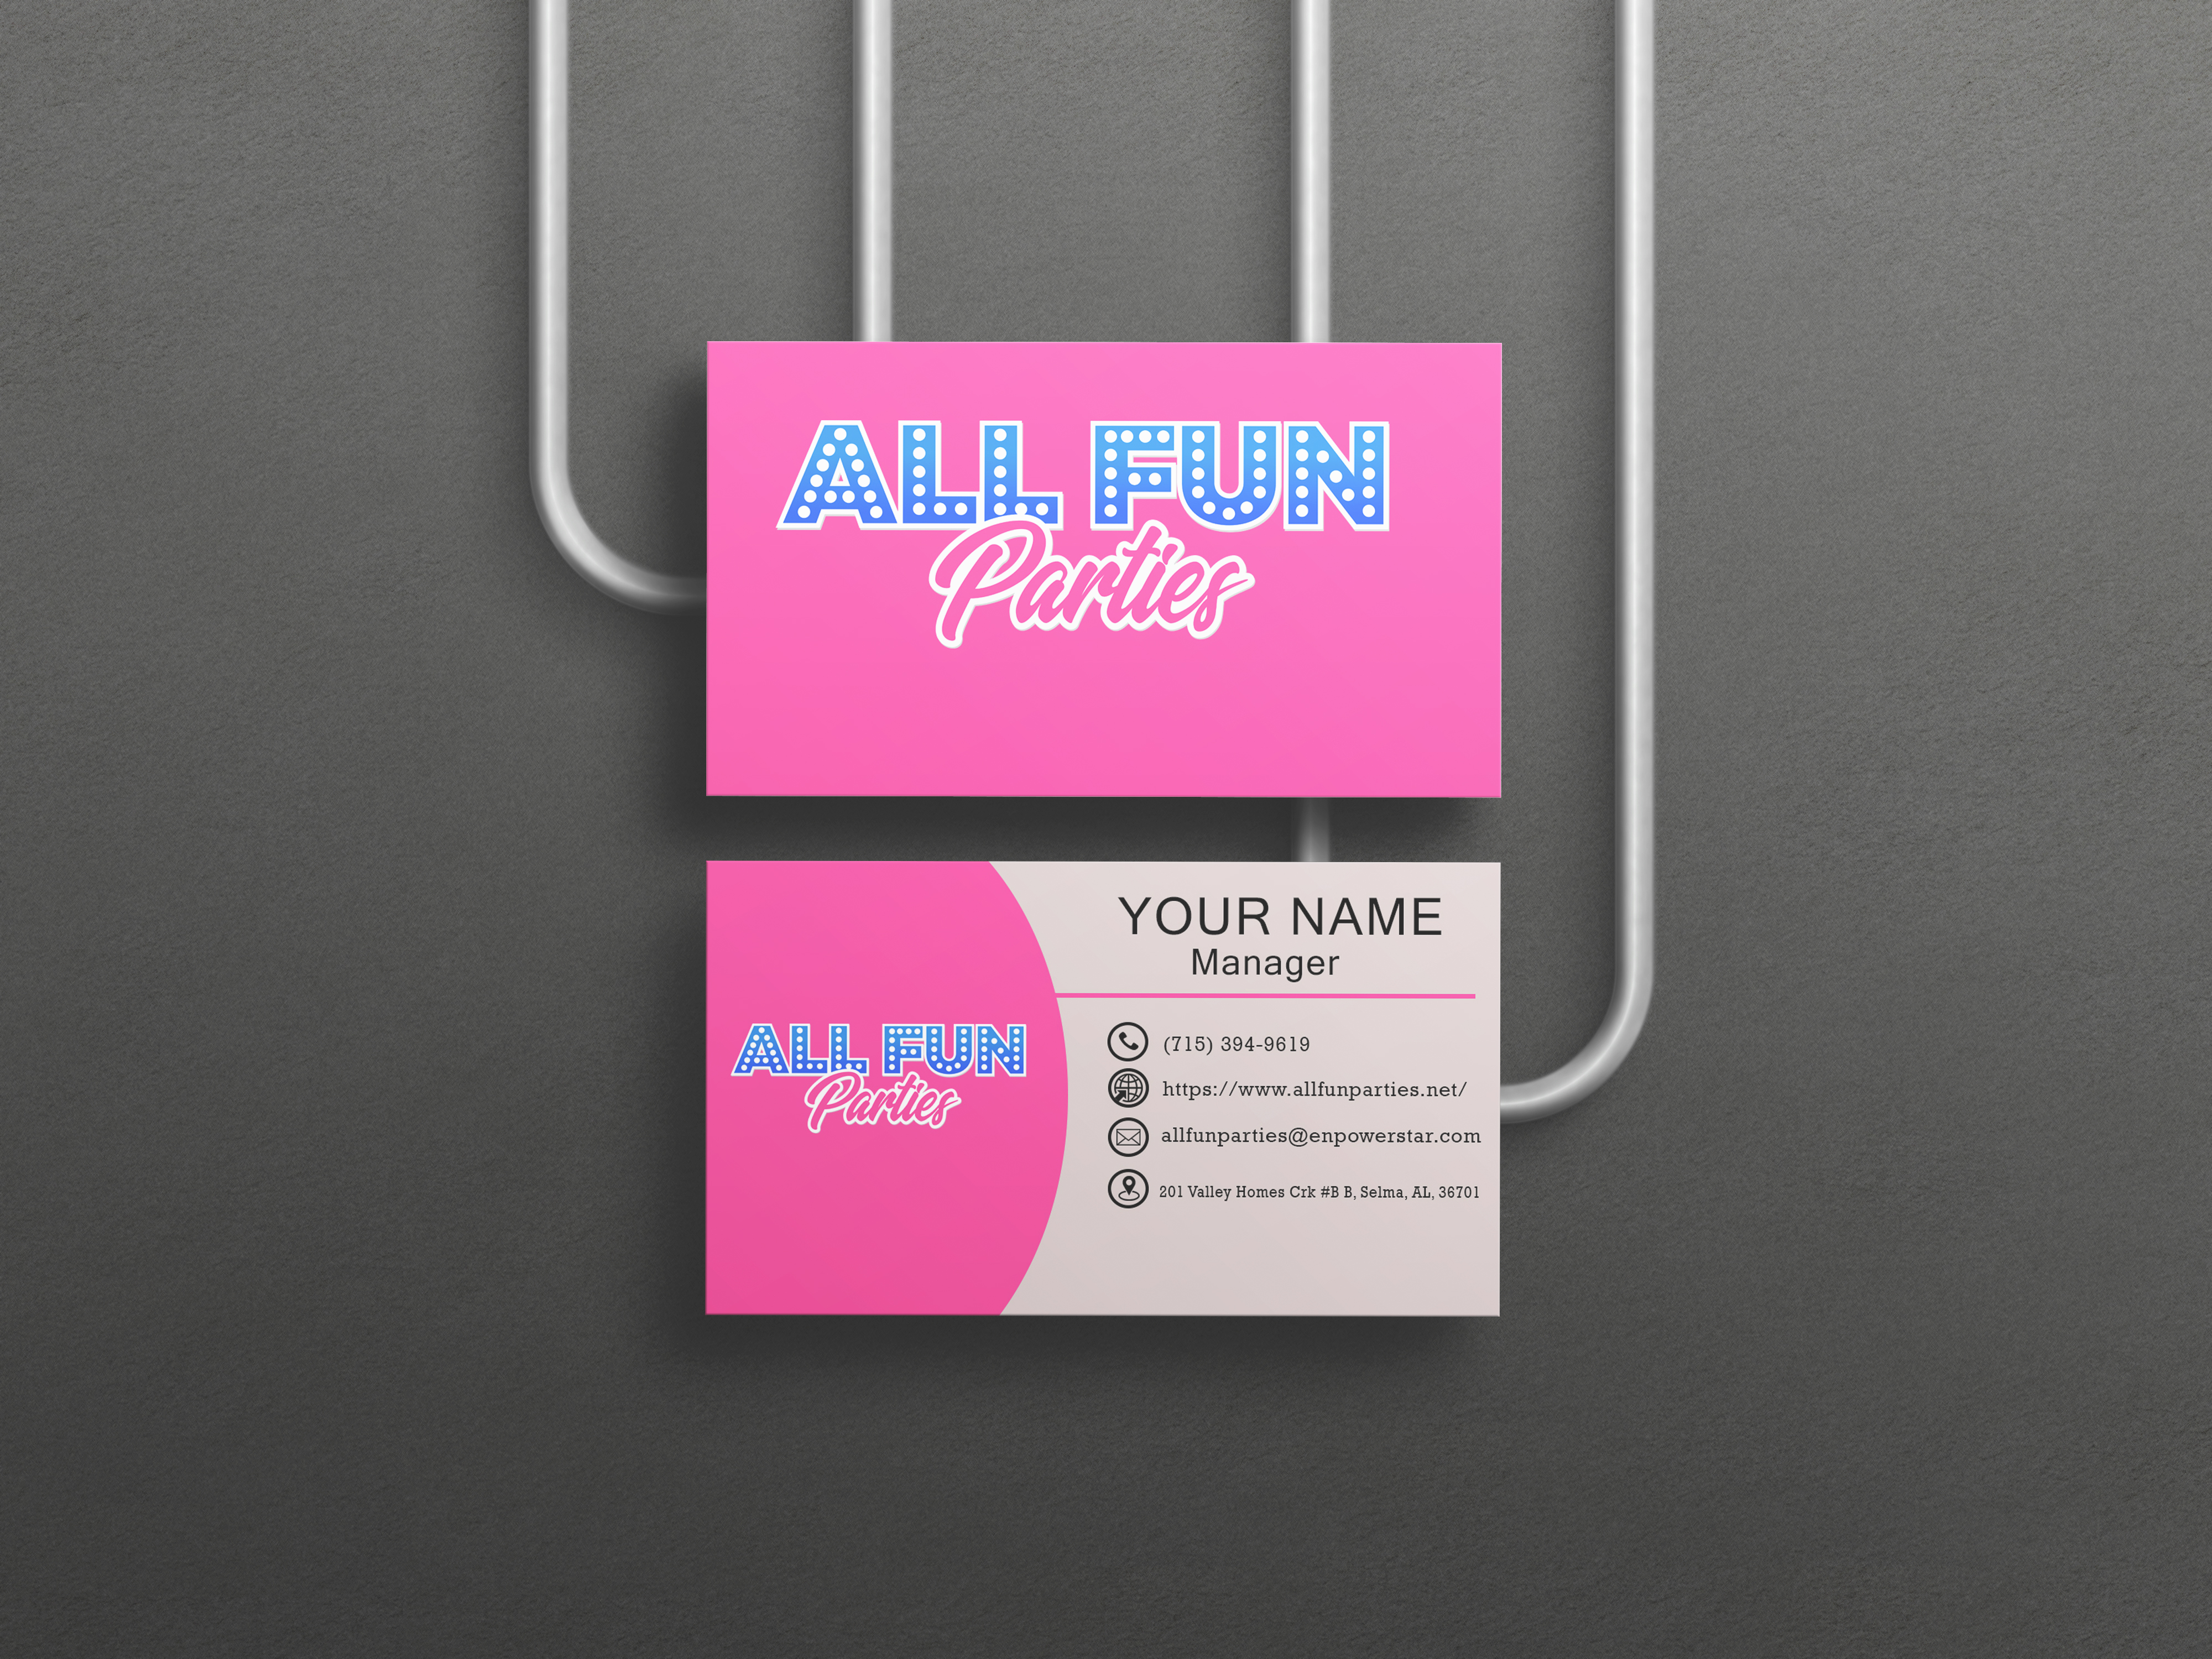 I will create an engaging business card design in 1hr